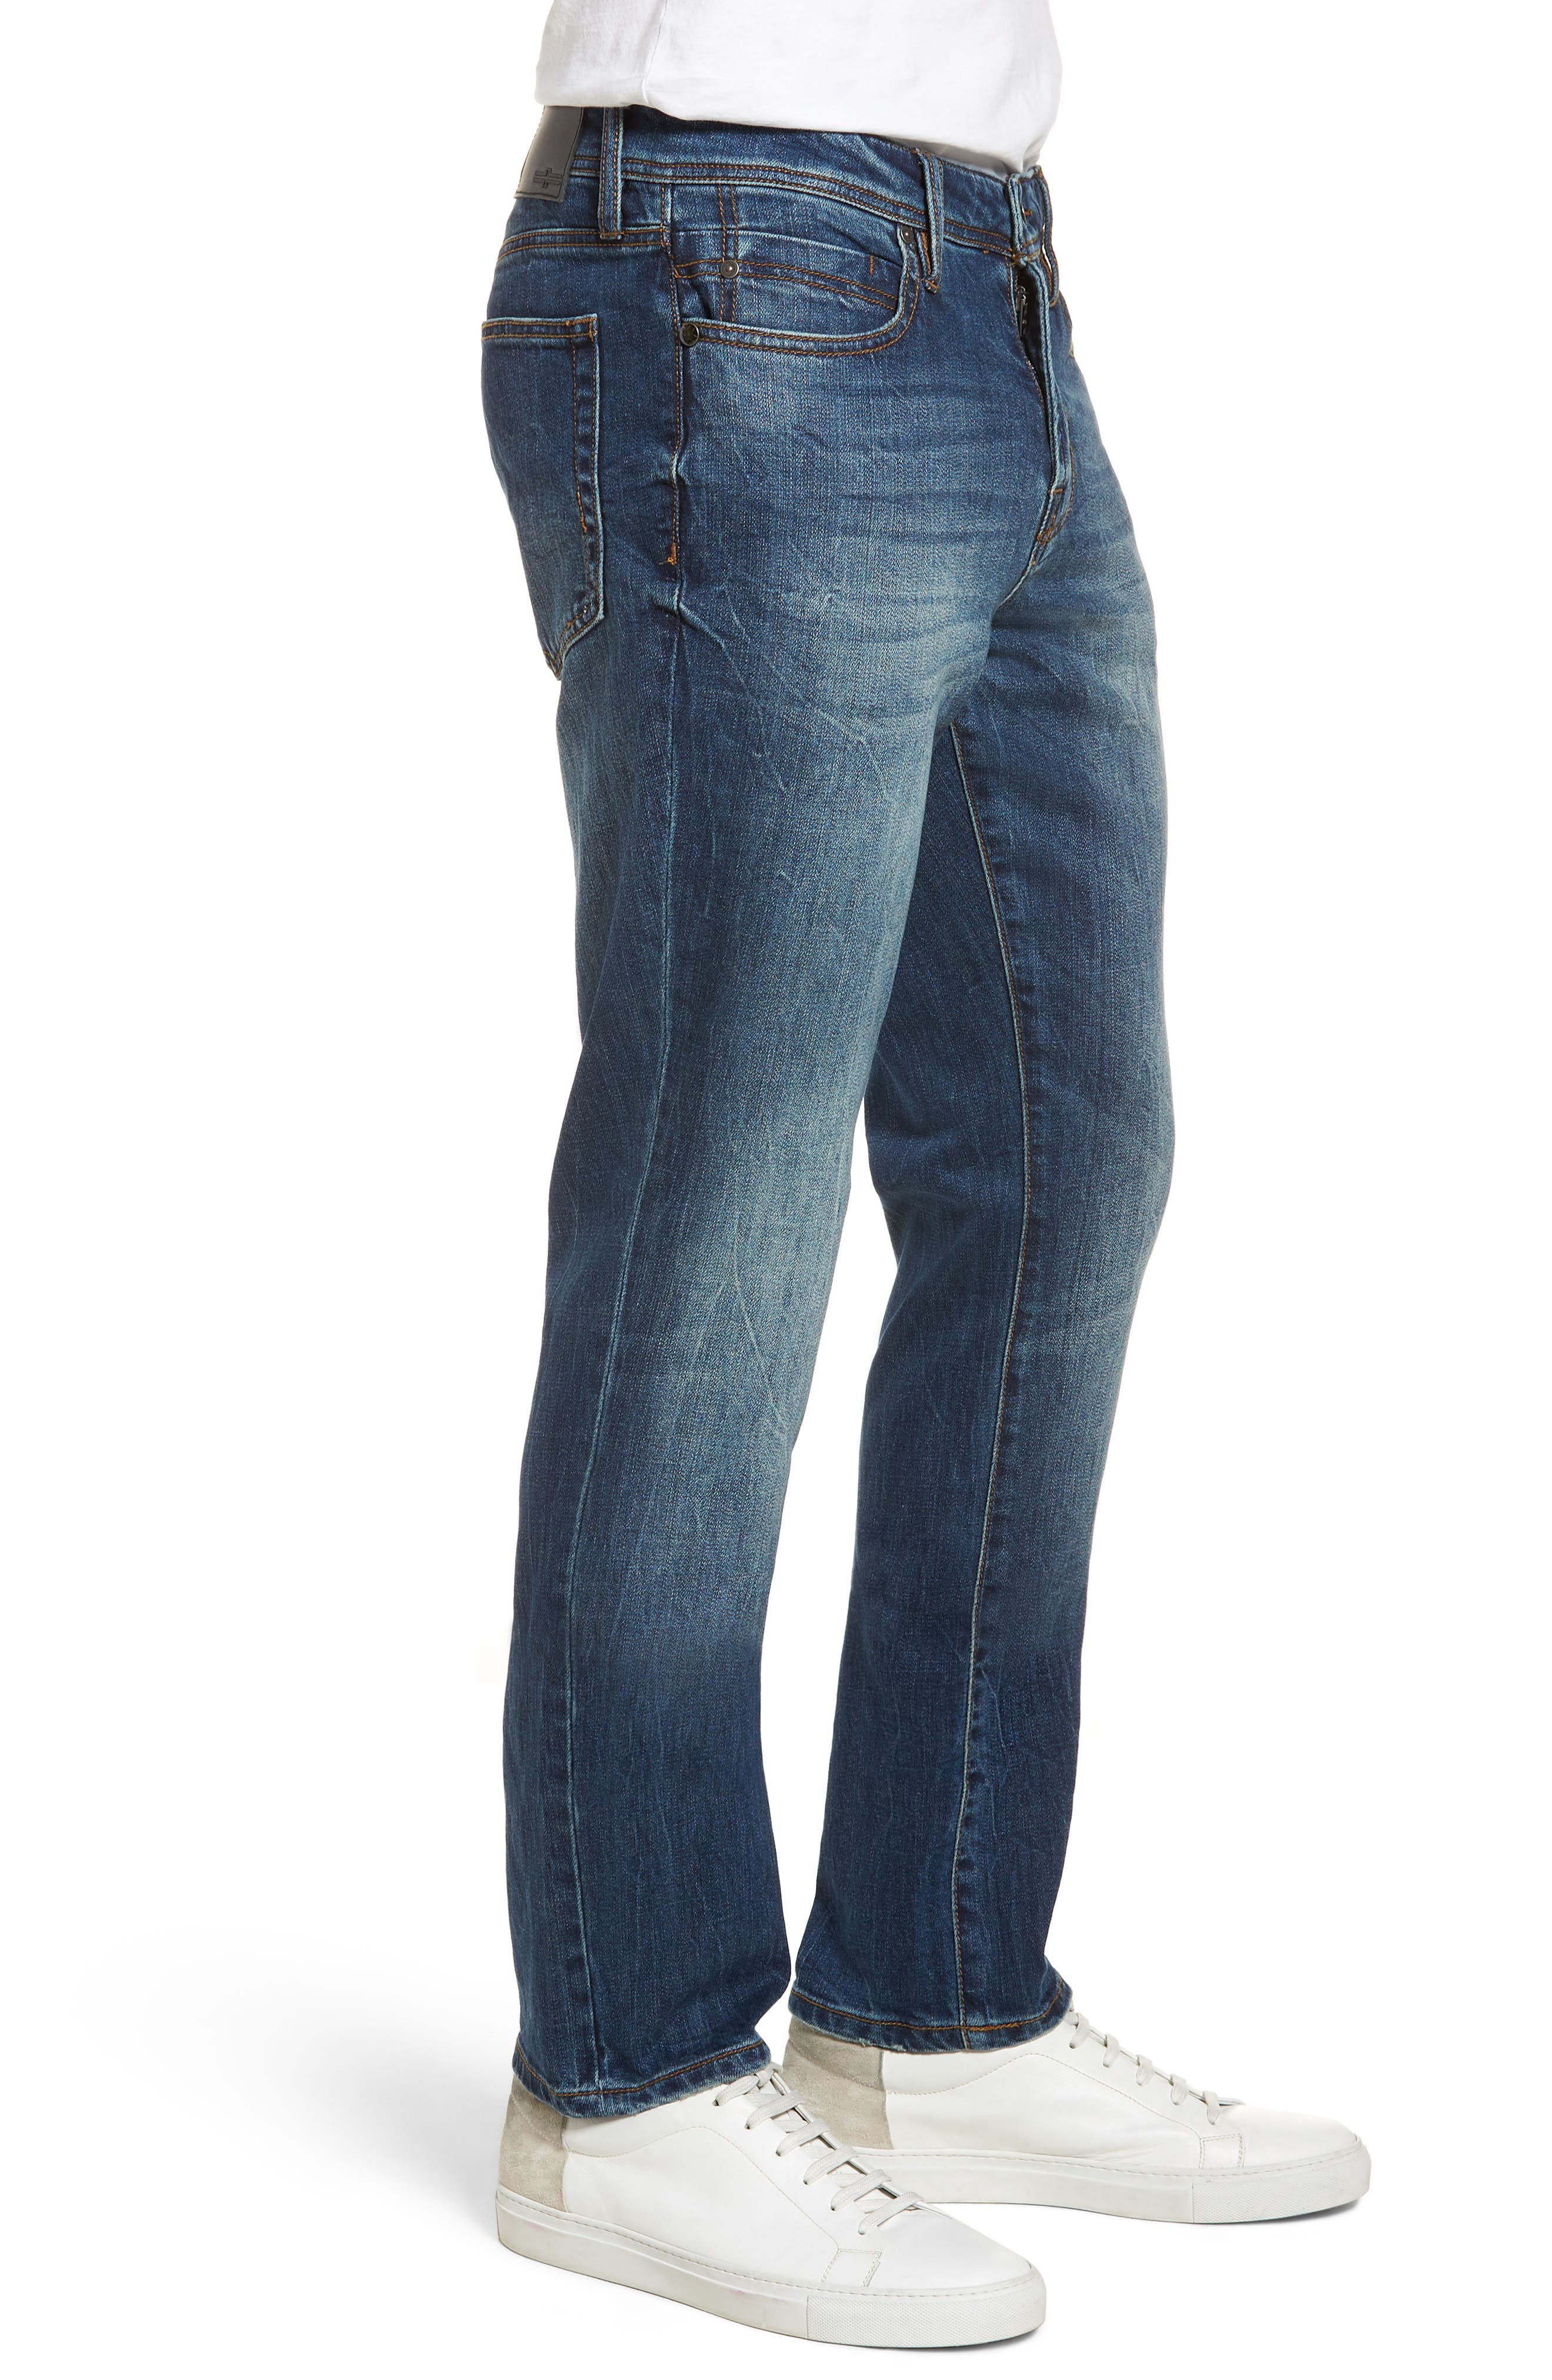 Jeans Co. Kingston Slim Straight Leg Jeans,                             Alternate thumbnail 3, color,                             ODESSA VINTAGE DARK